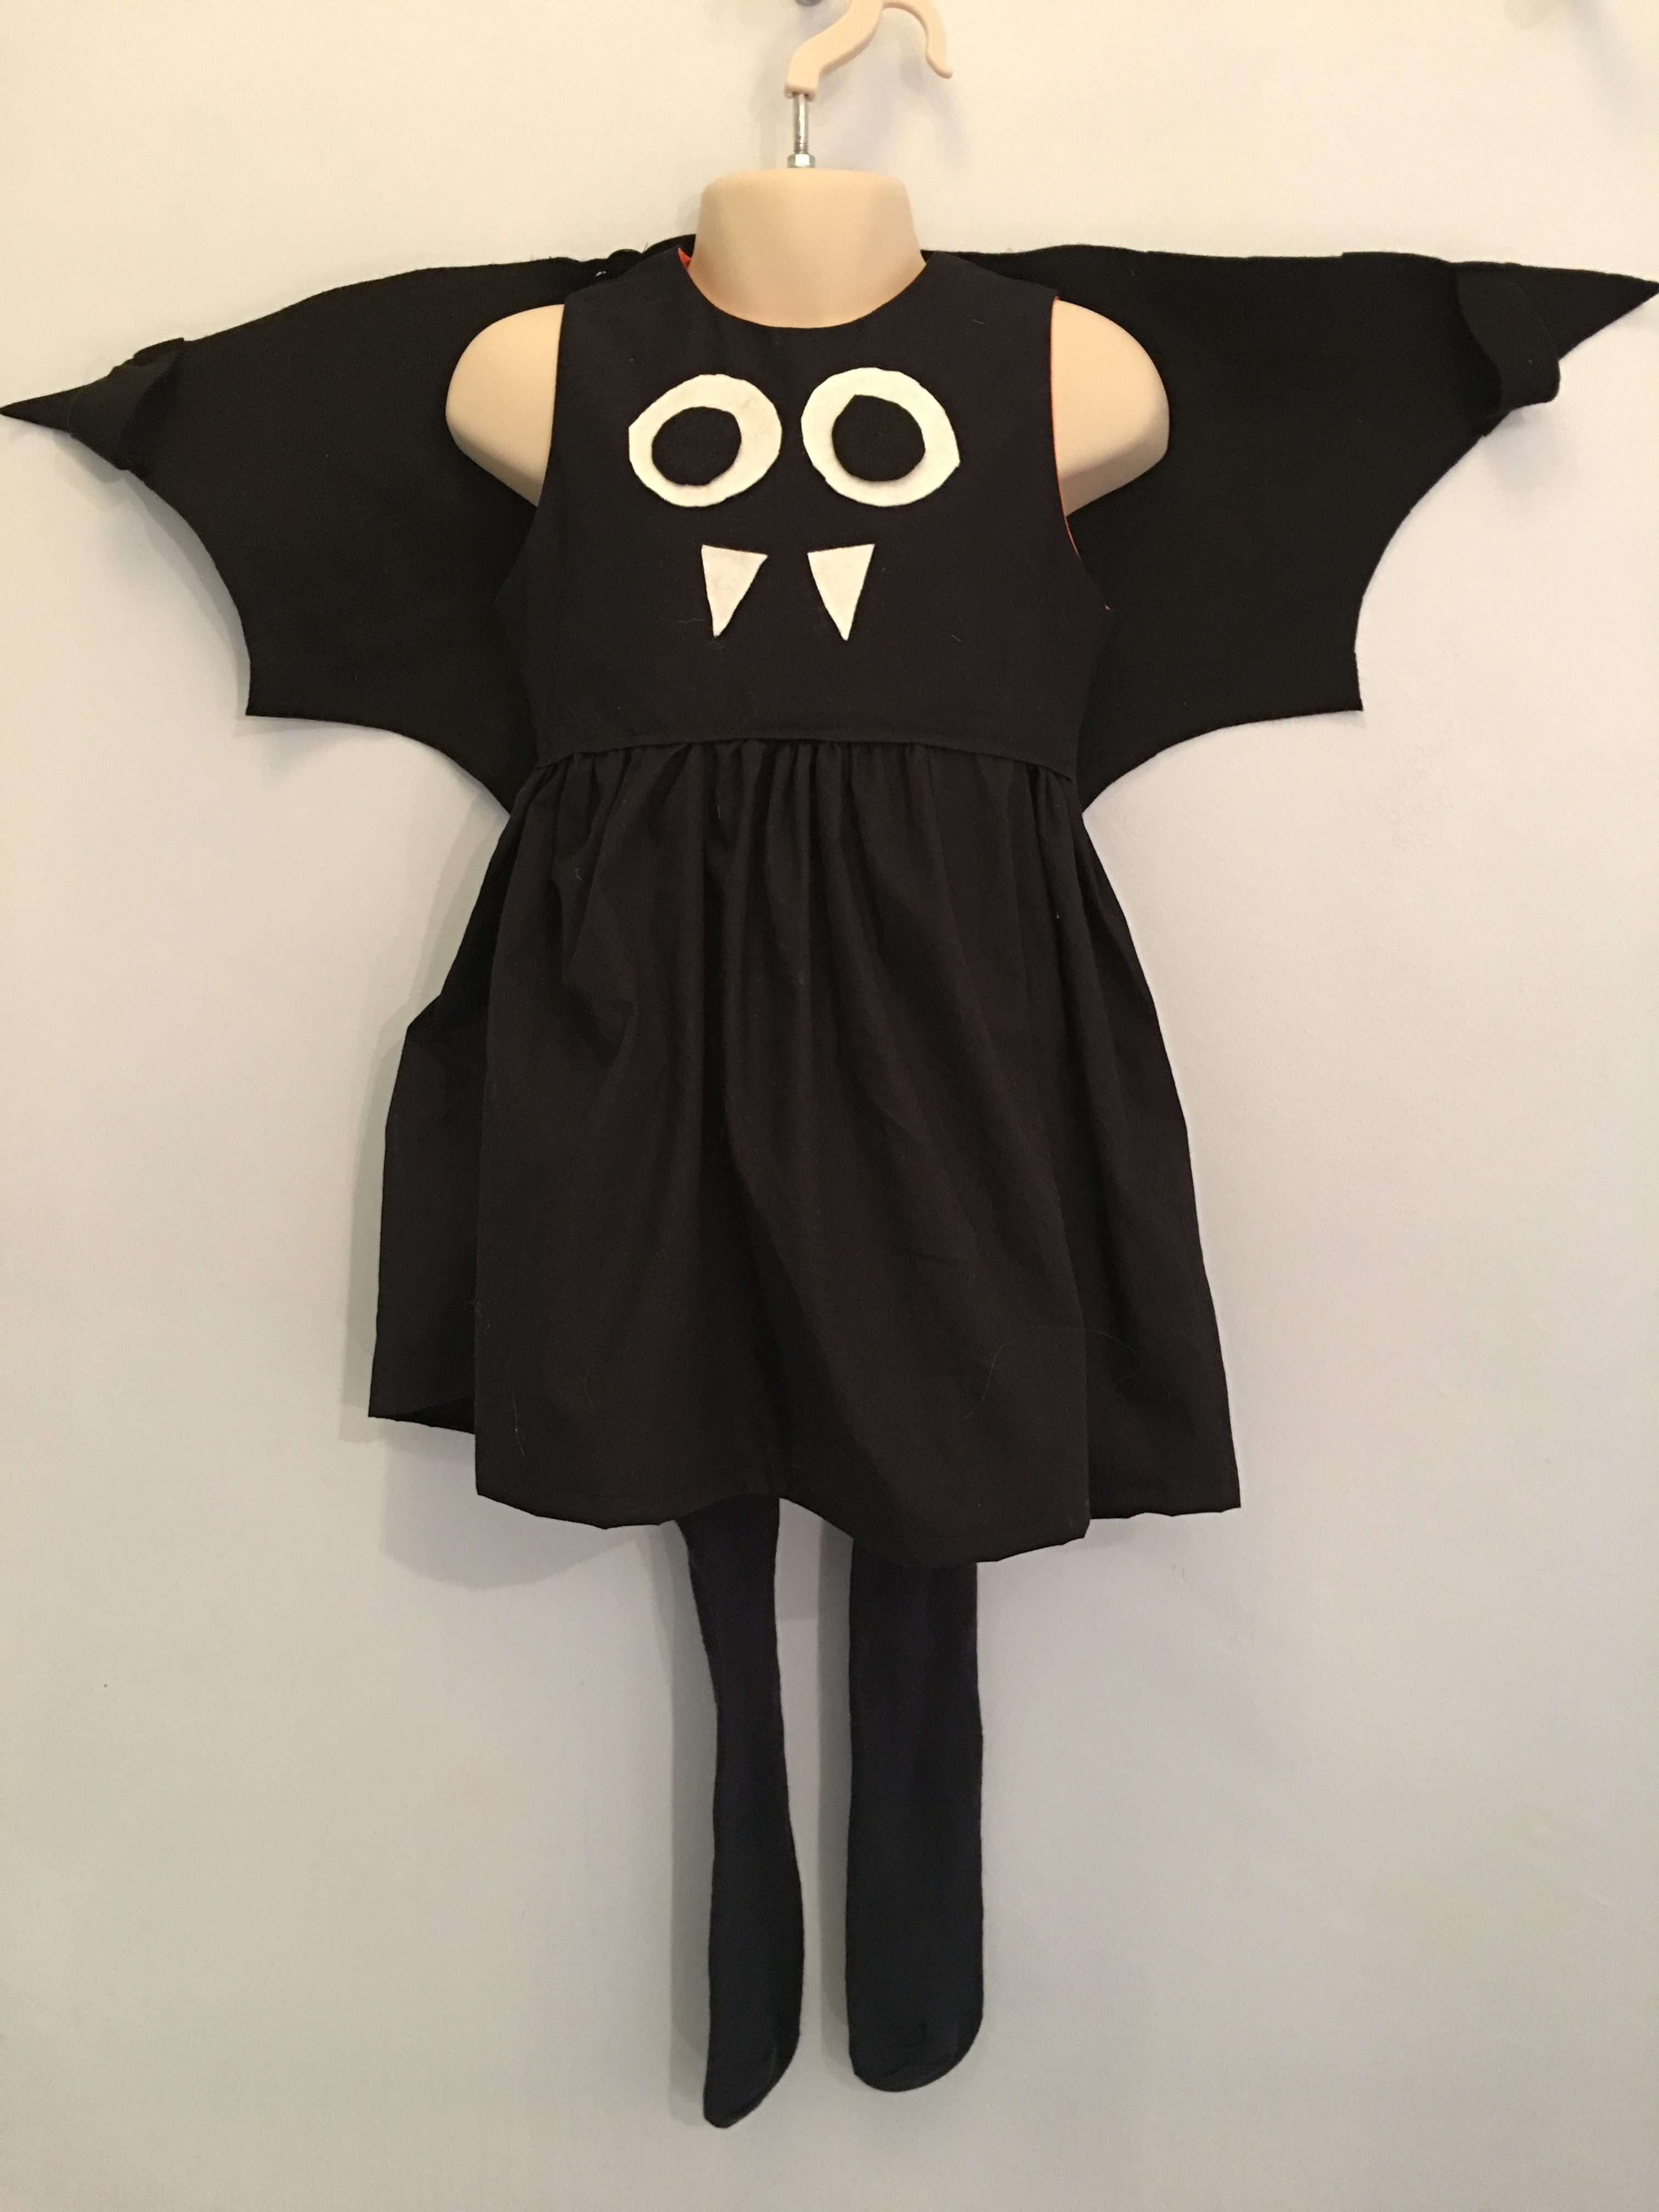 Bat costume - Halloween Outfits Made Around A simple Black Dress - outfits for children dressing up that use a black dress as their base #halloweencostumes #halloweenoutfits #halloweenpartyideas #halloweencostumesforkids #halloweendiy #halloweencrafts #halloweencostumeideas #halloweenwitch #dressingup #dressupideas #batcostume